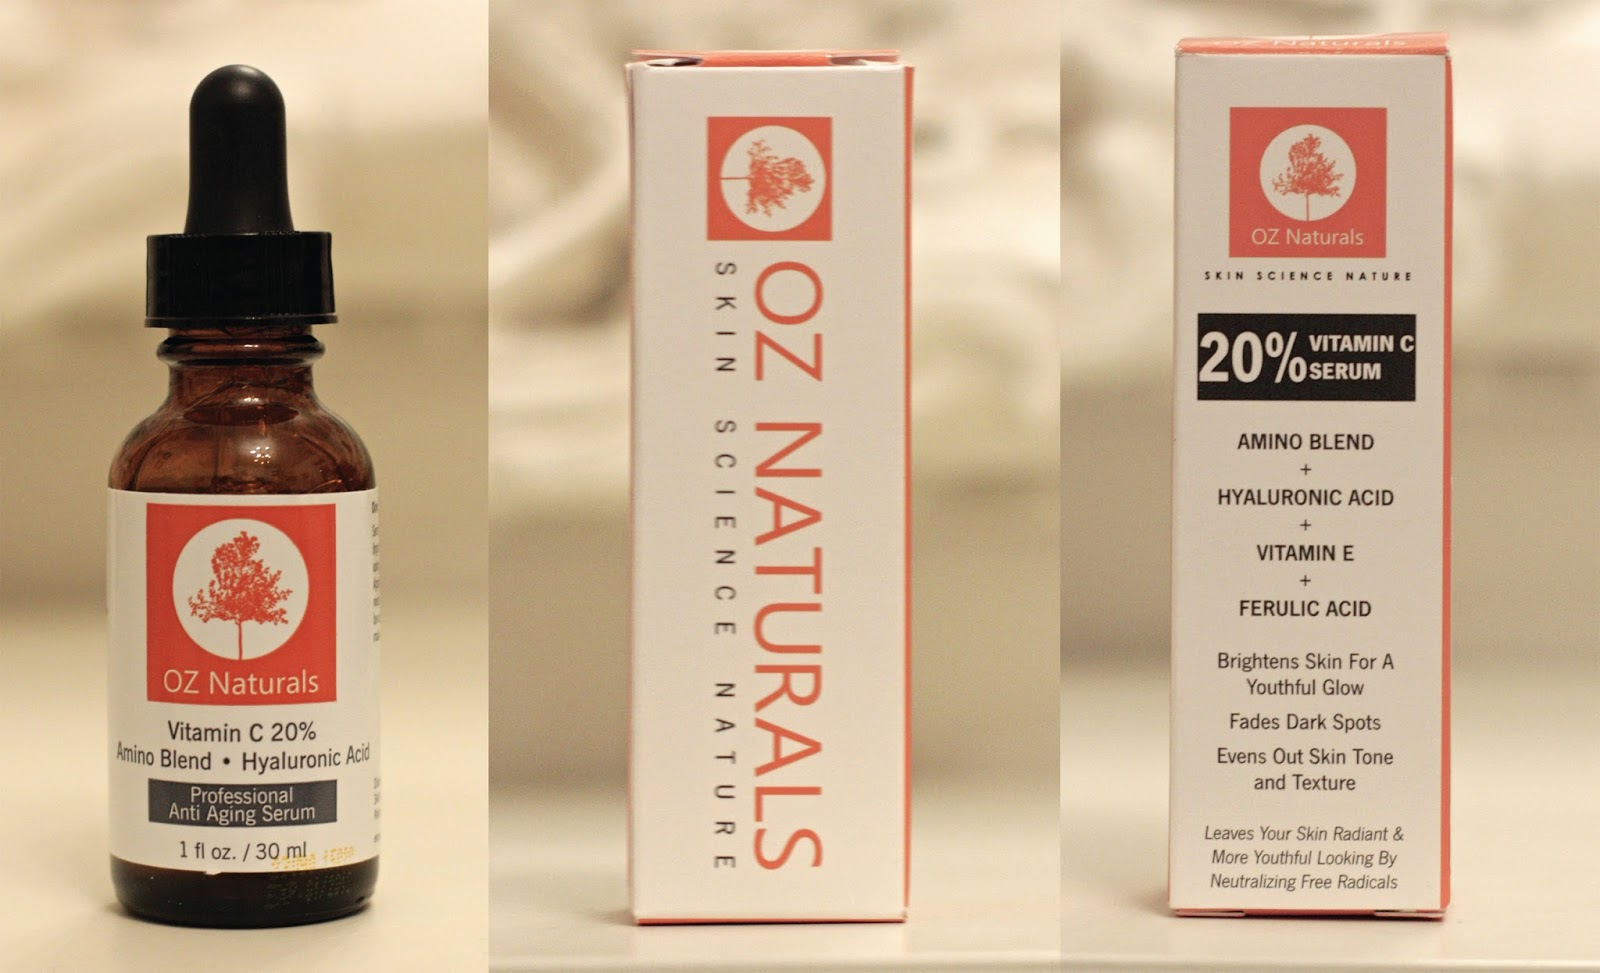 Ascorbic acid serum by OZ Naturals, Vitamin C review